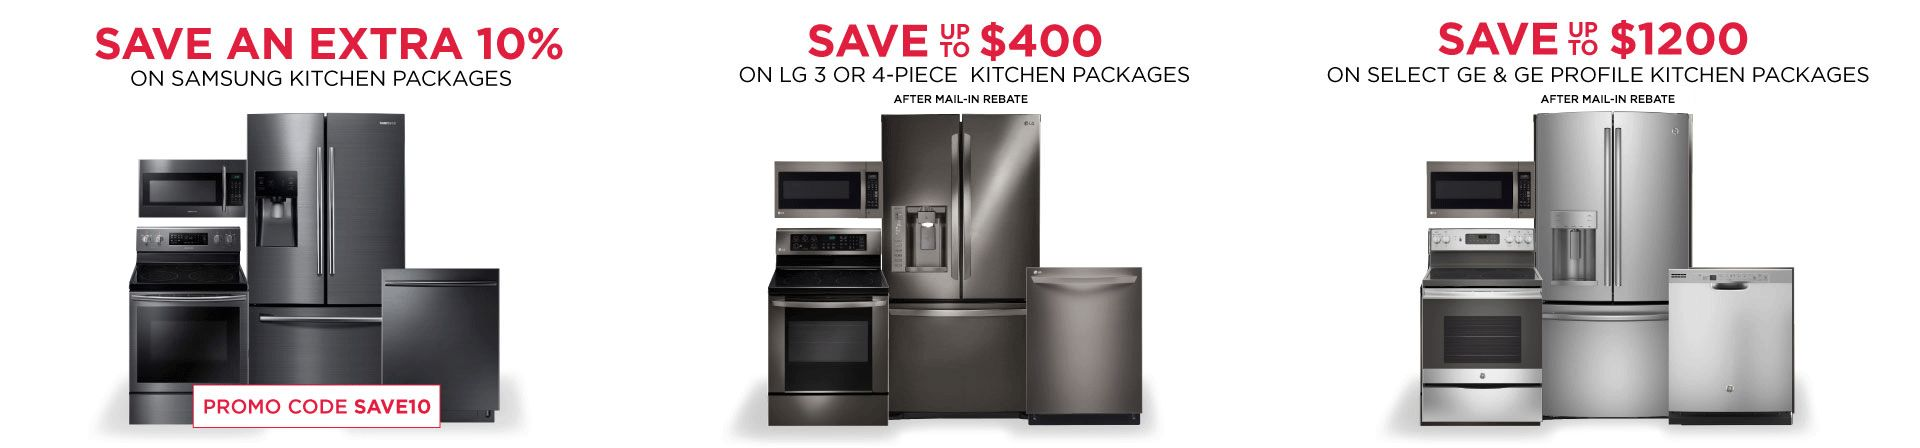 Save EXTRA on packages from GE, LG & Samsung!